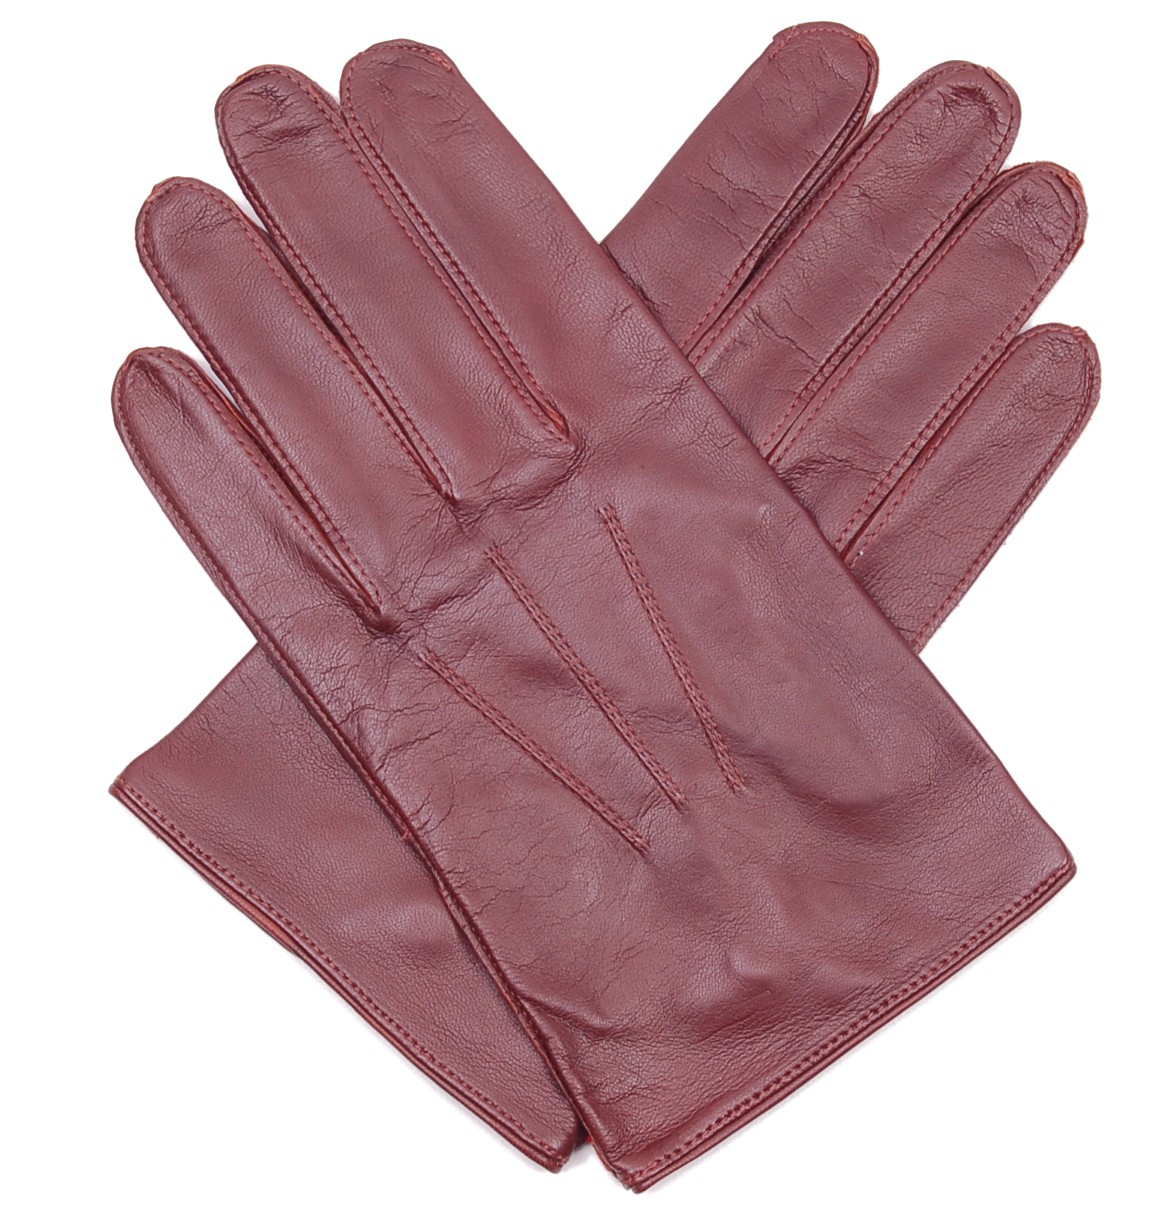 Mens leather gloves dents - Men S English Tan Leather Professional Driving Gloves By Dents